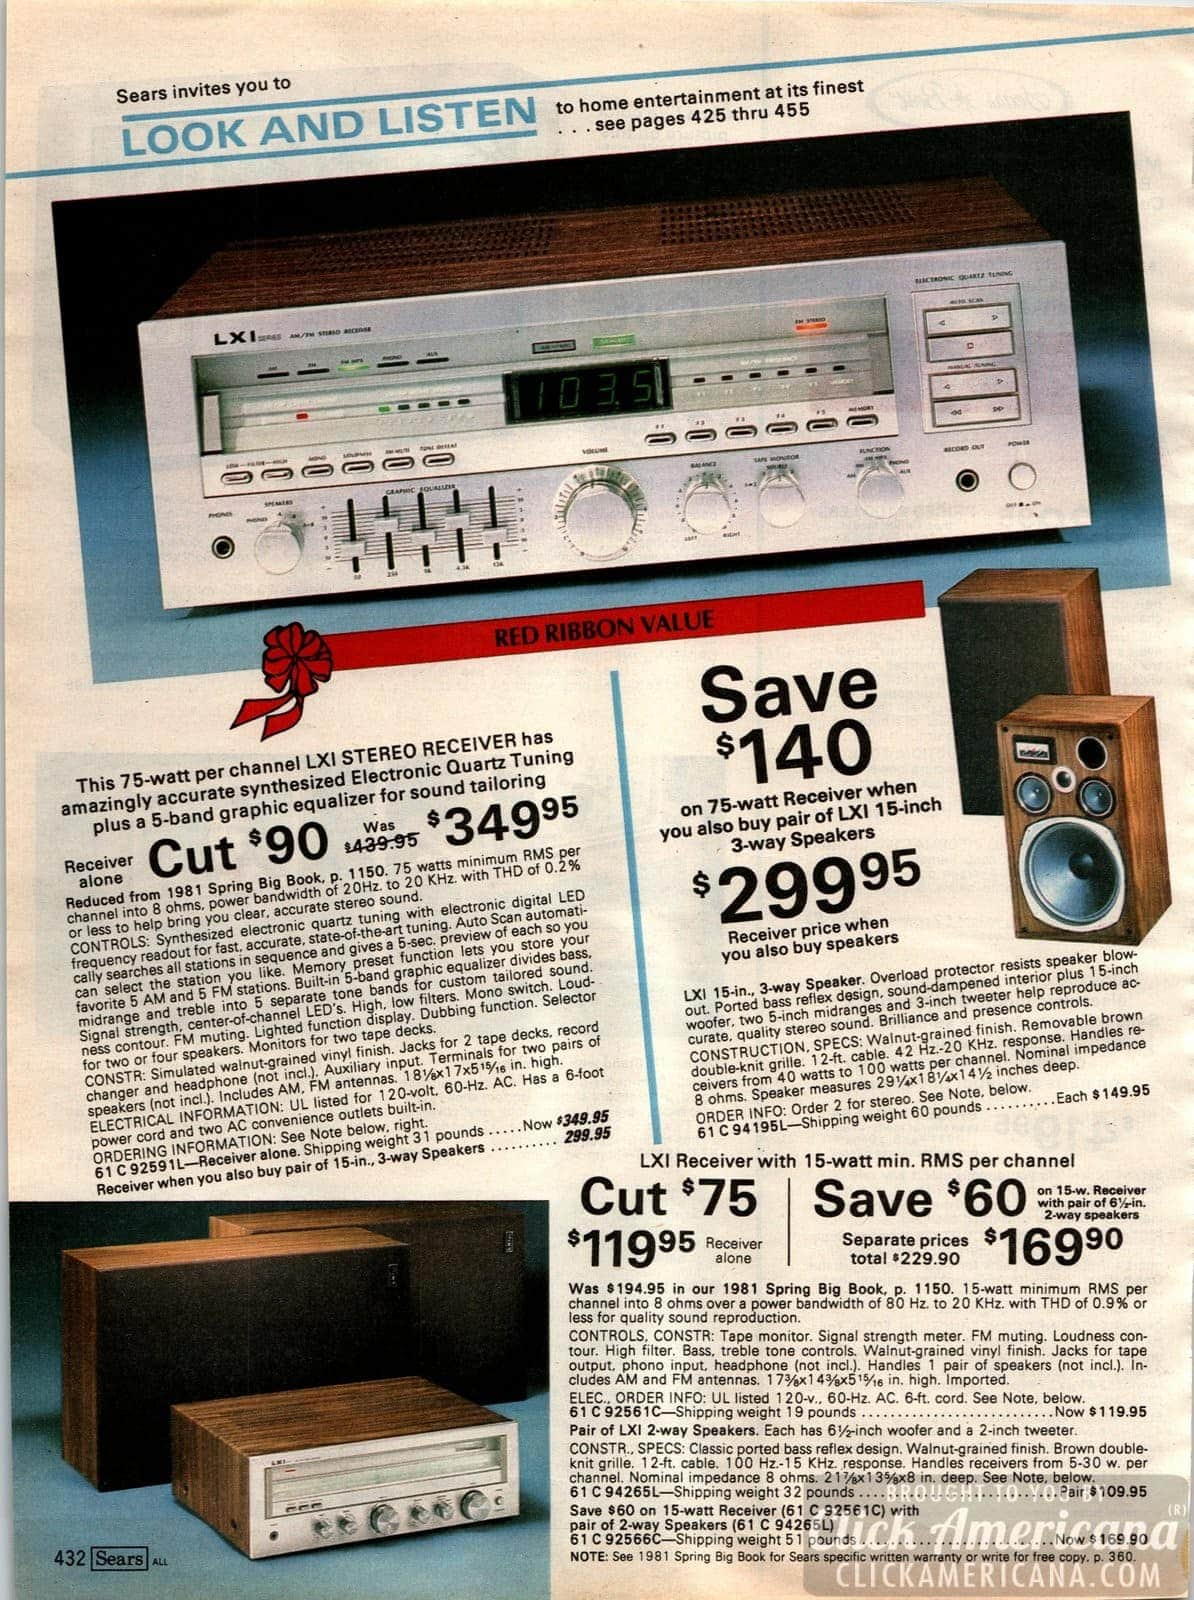 Stereo receivers with electronic quartz tuning, and 3-way speakers for home stereo systems